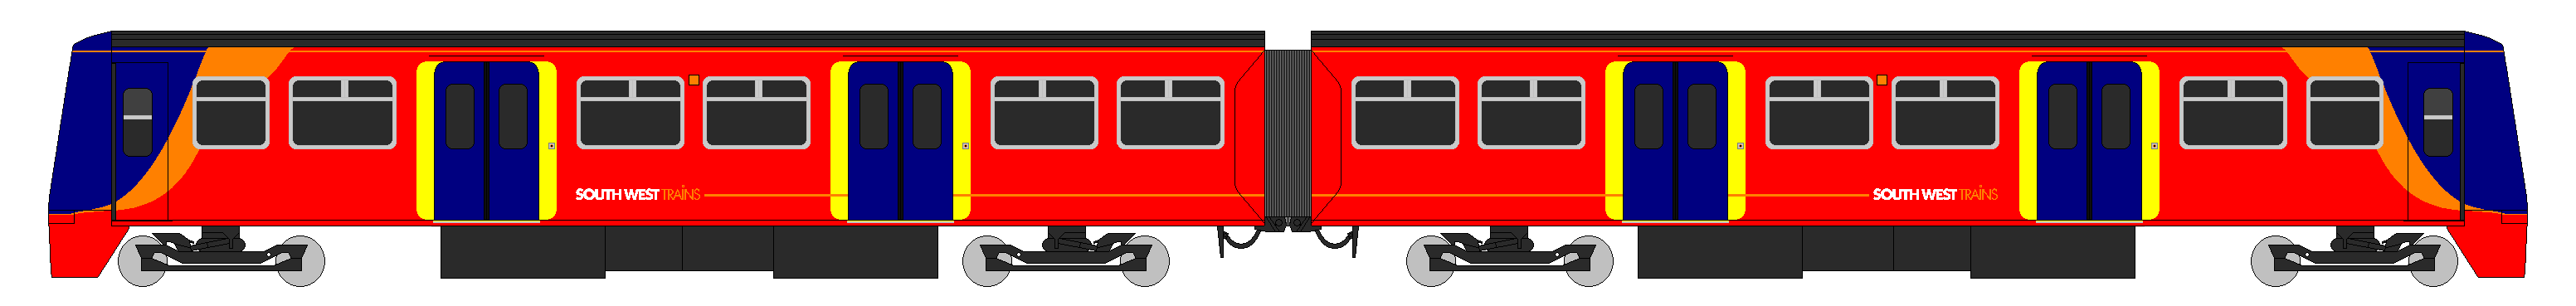 File Class 456 South West    Trains       Diagram   png  Wikipedia